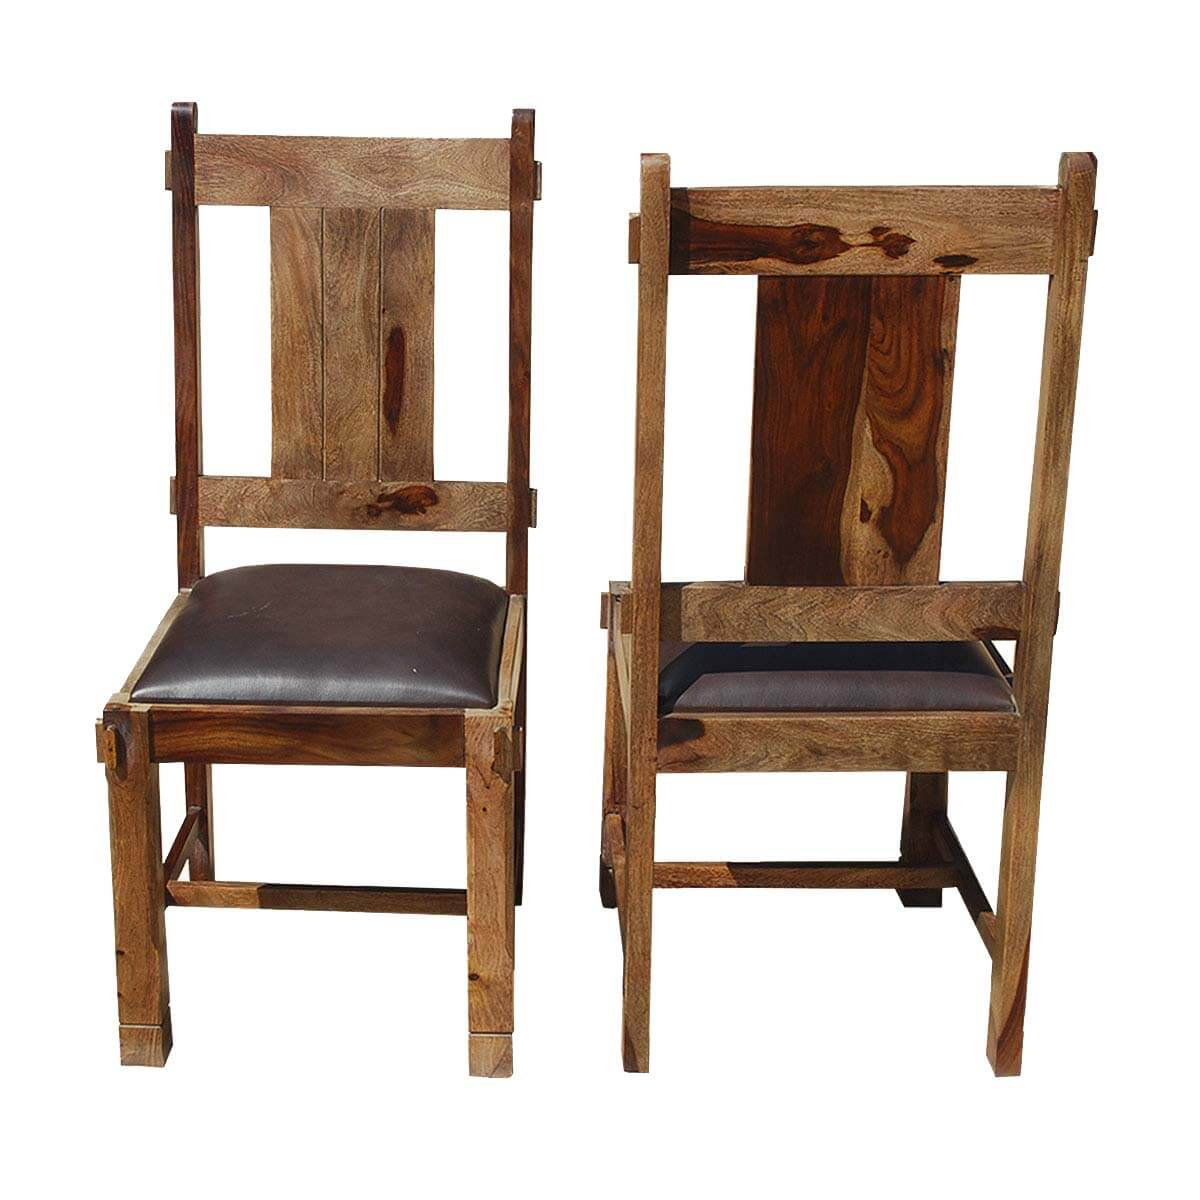 appalachian rustic solid wood leather chairs set of 2. Black Bedroom Furniture Sets. Home Design Ideas